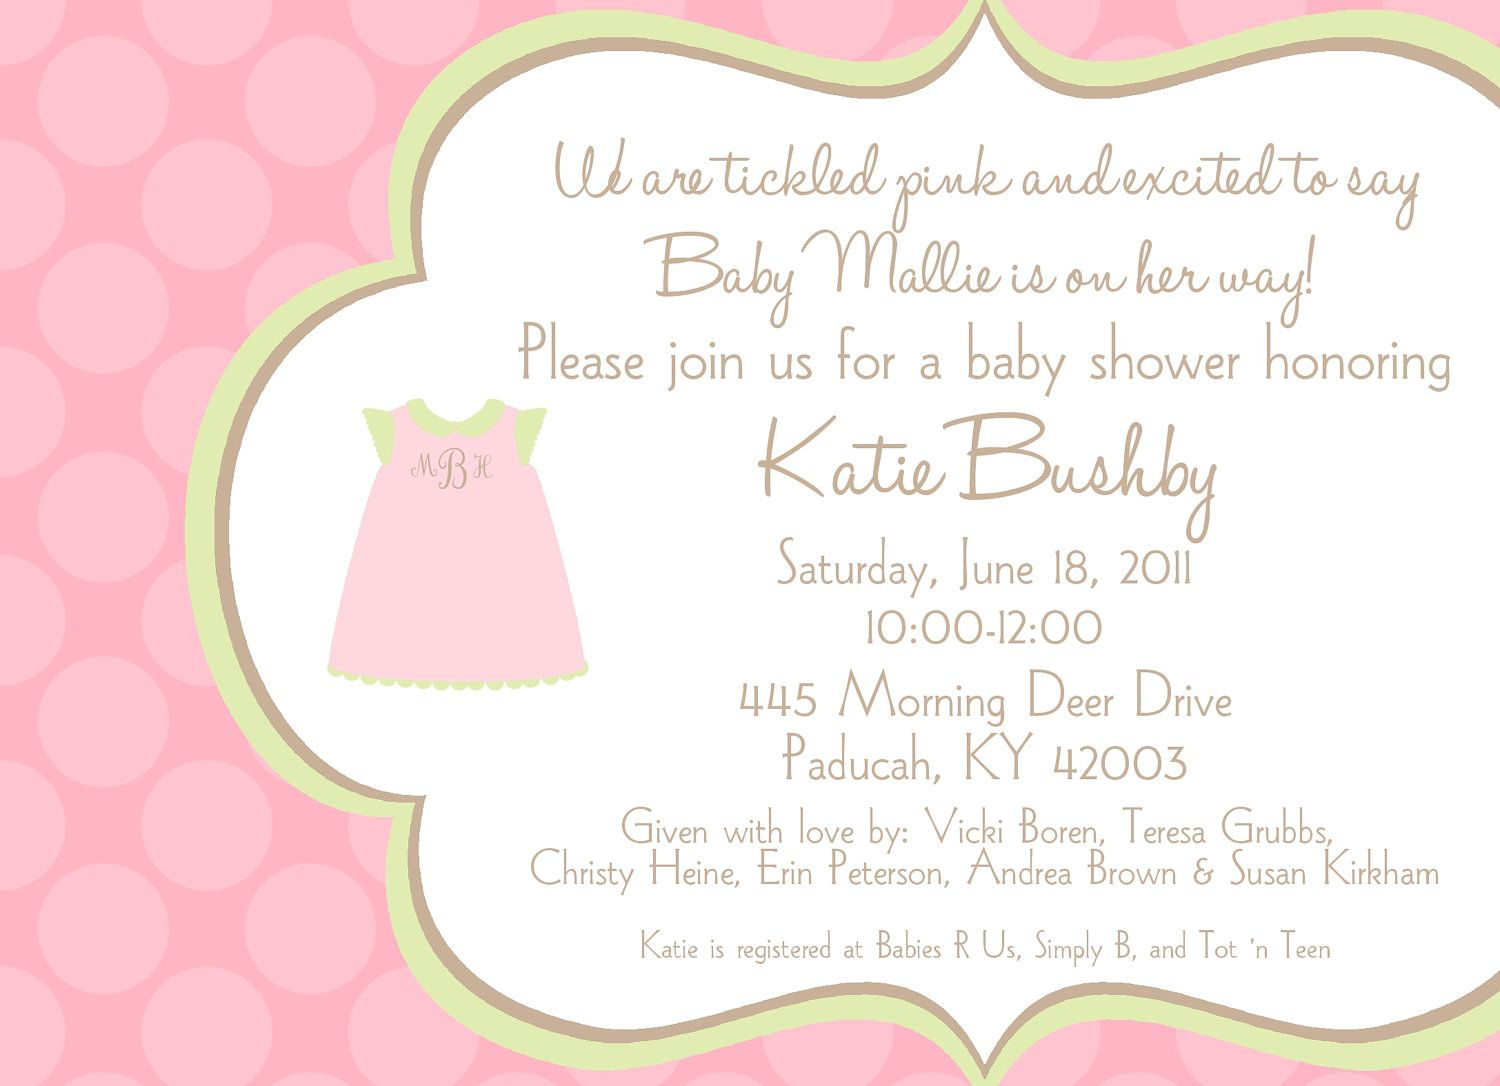 Catchy baby shower invitations for boy and girl twins ...